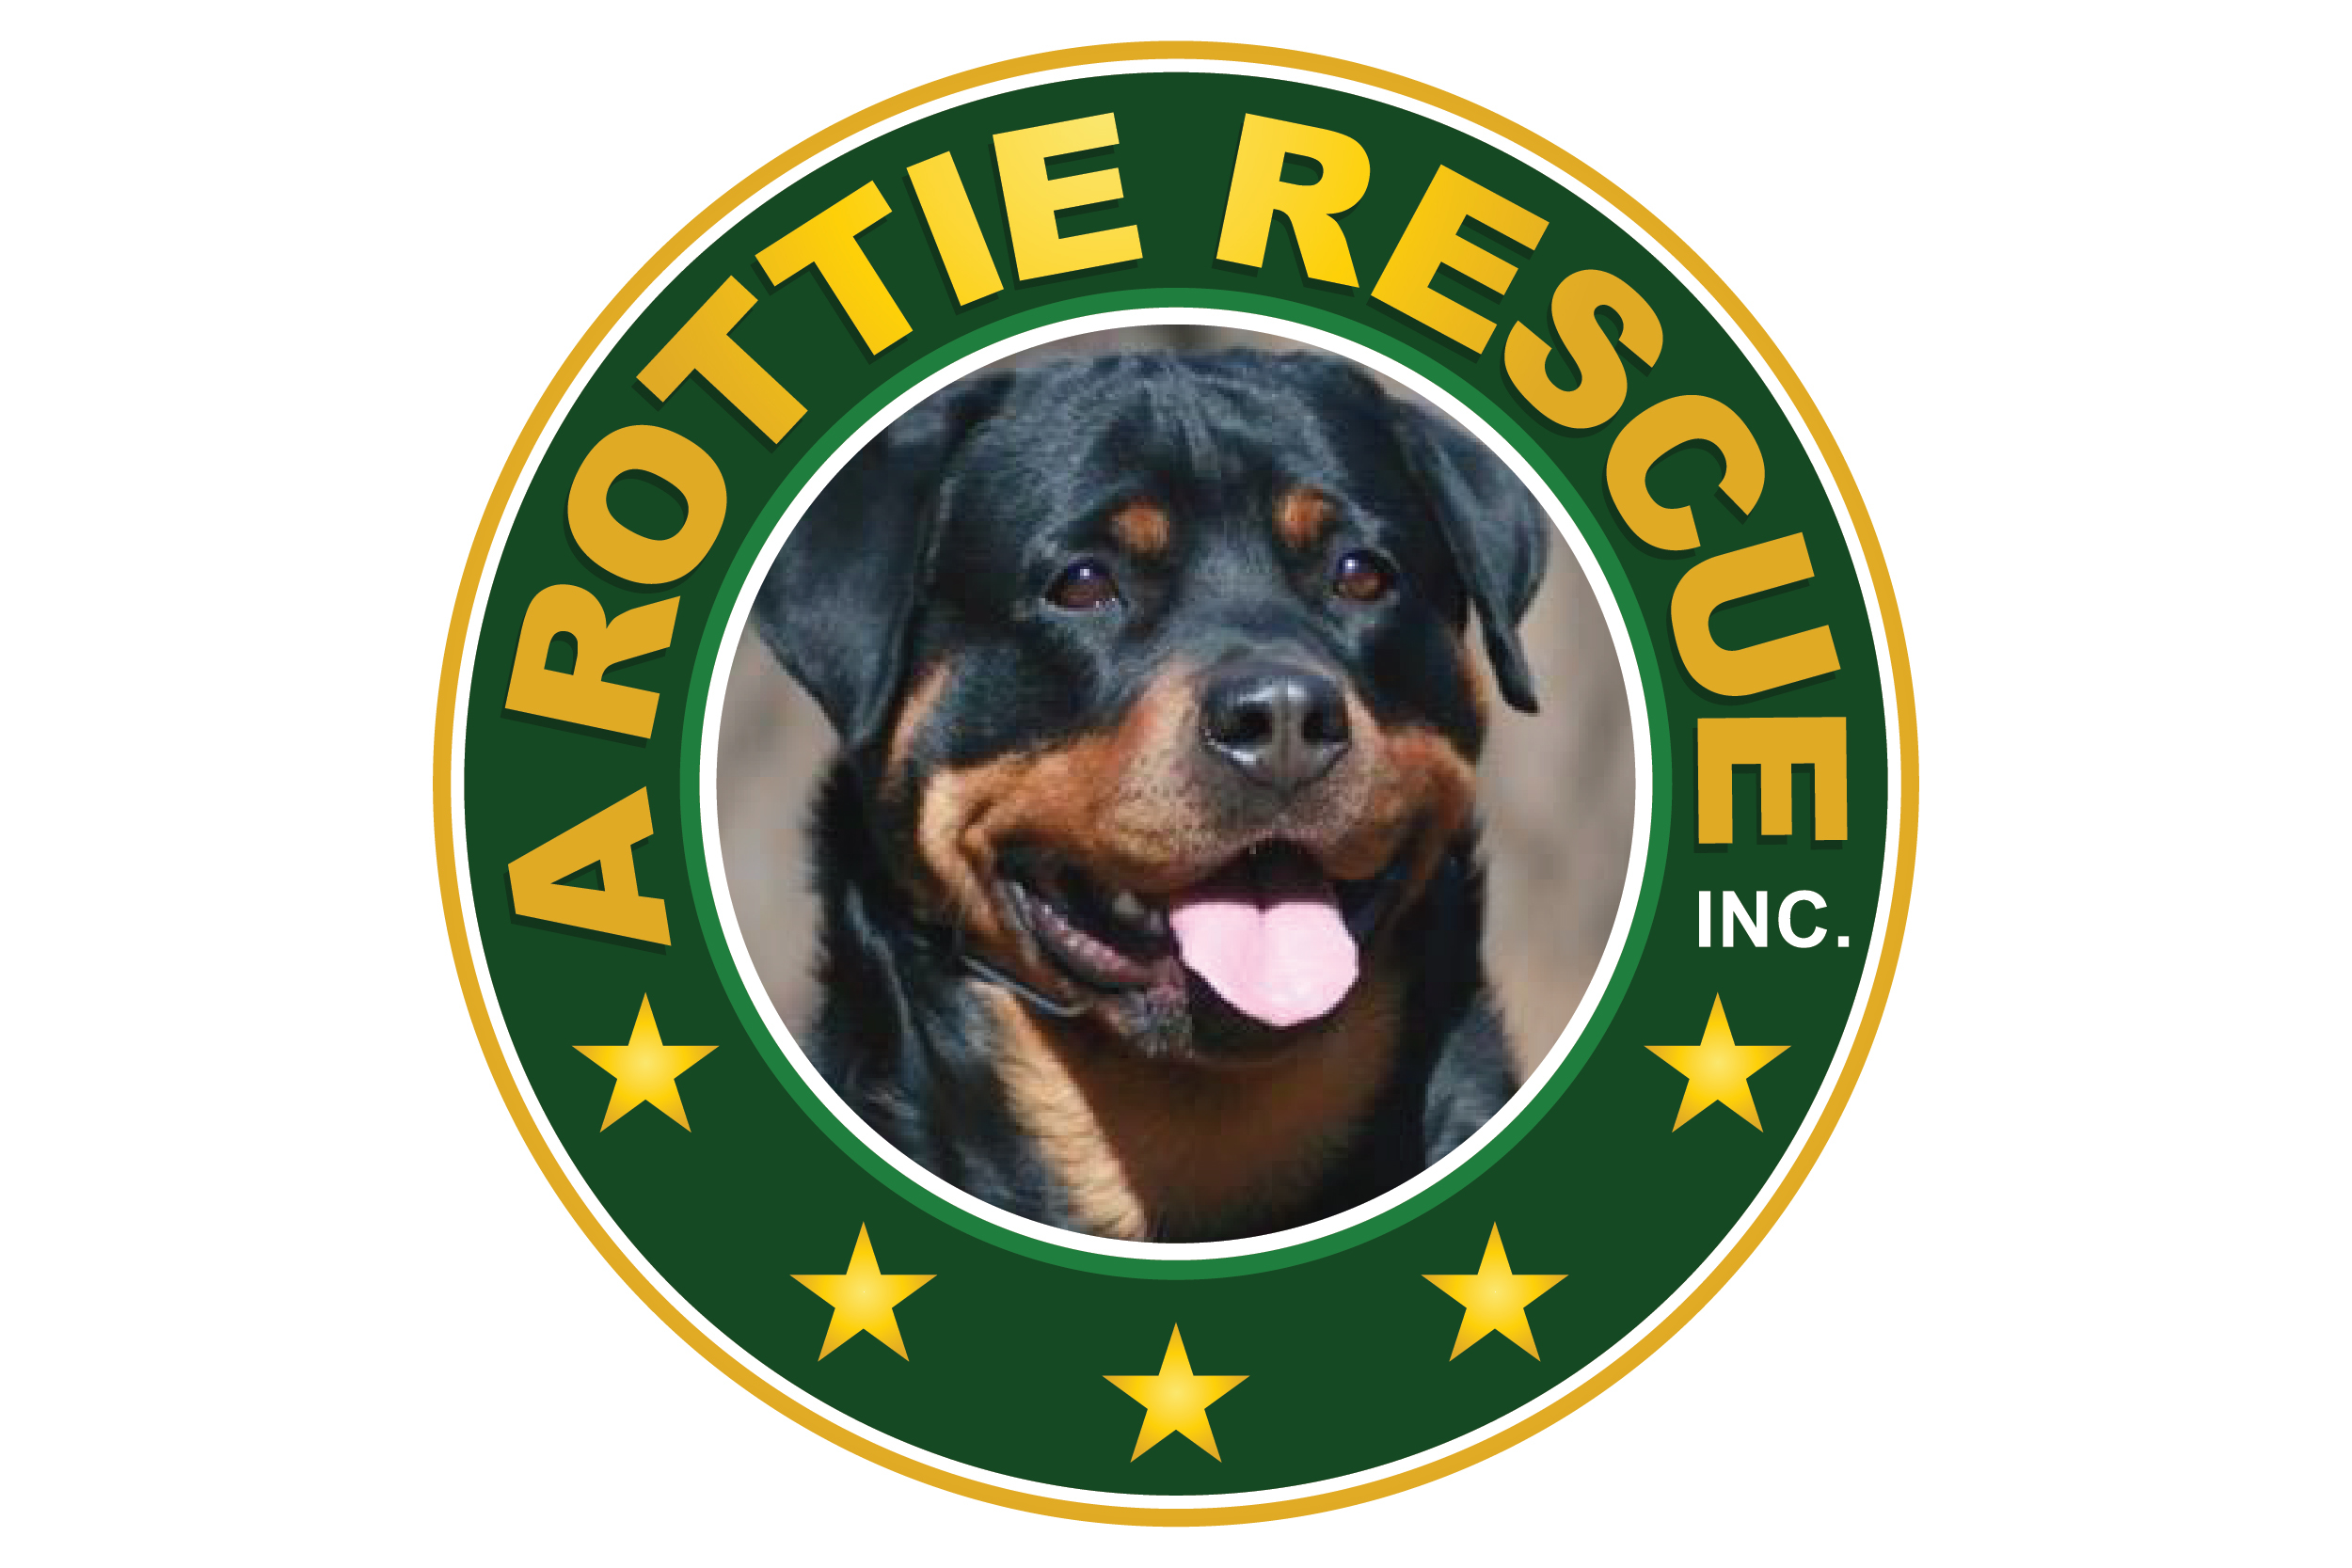 A Rottie Rescue, Inc.